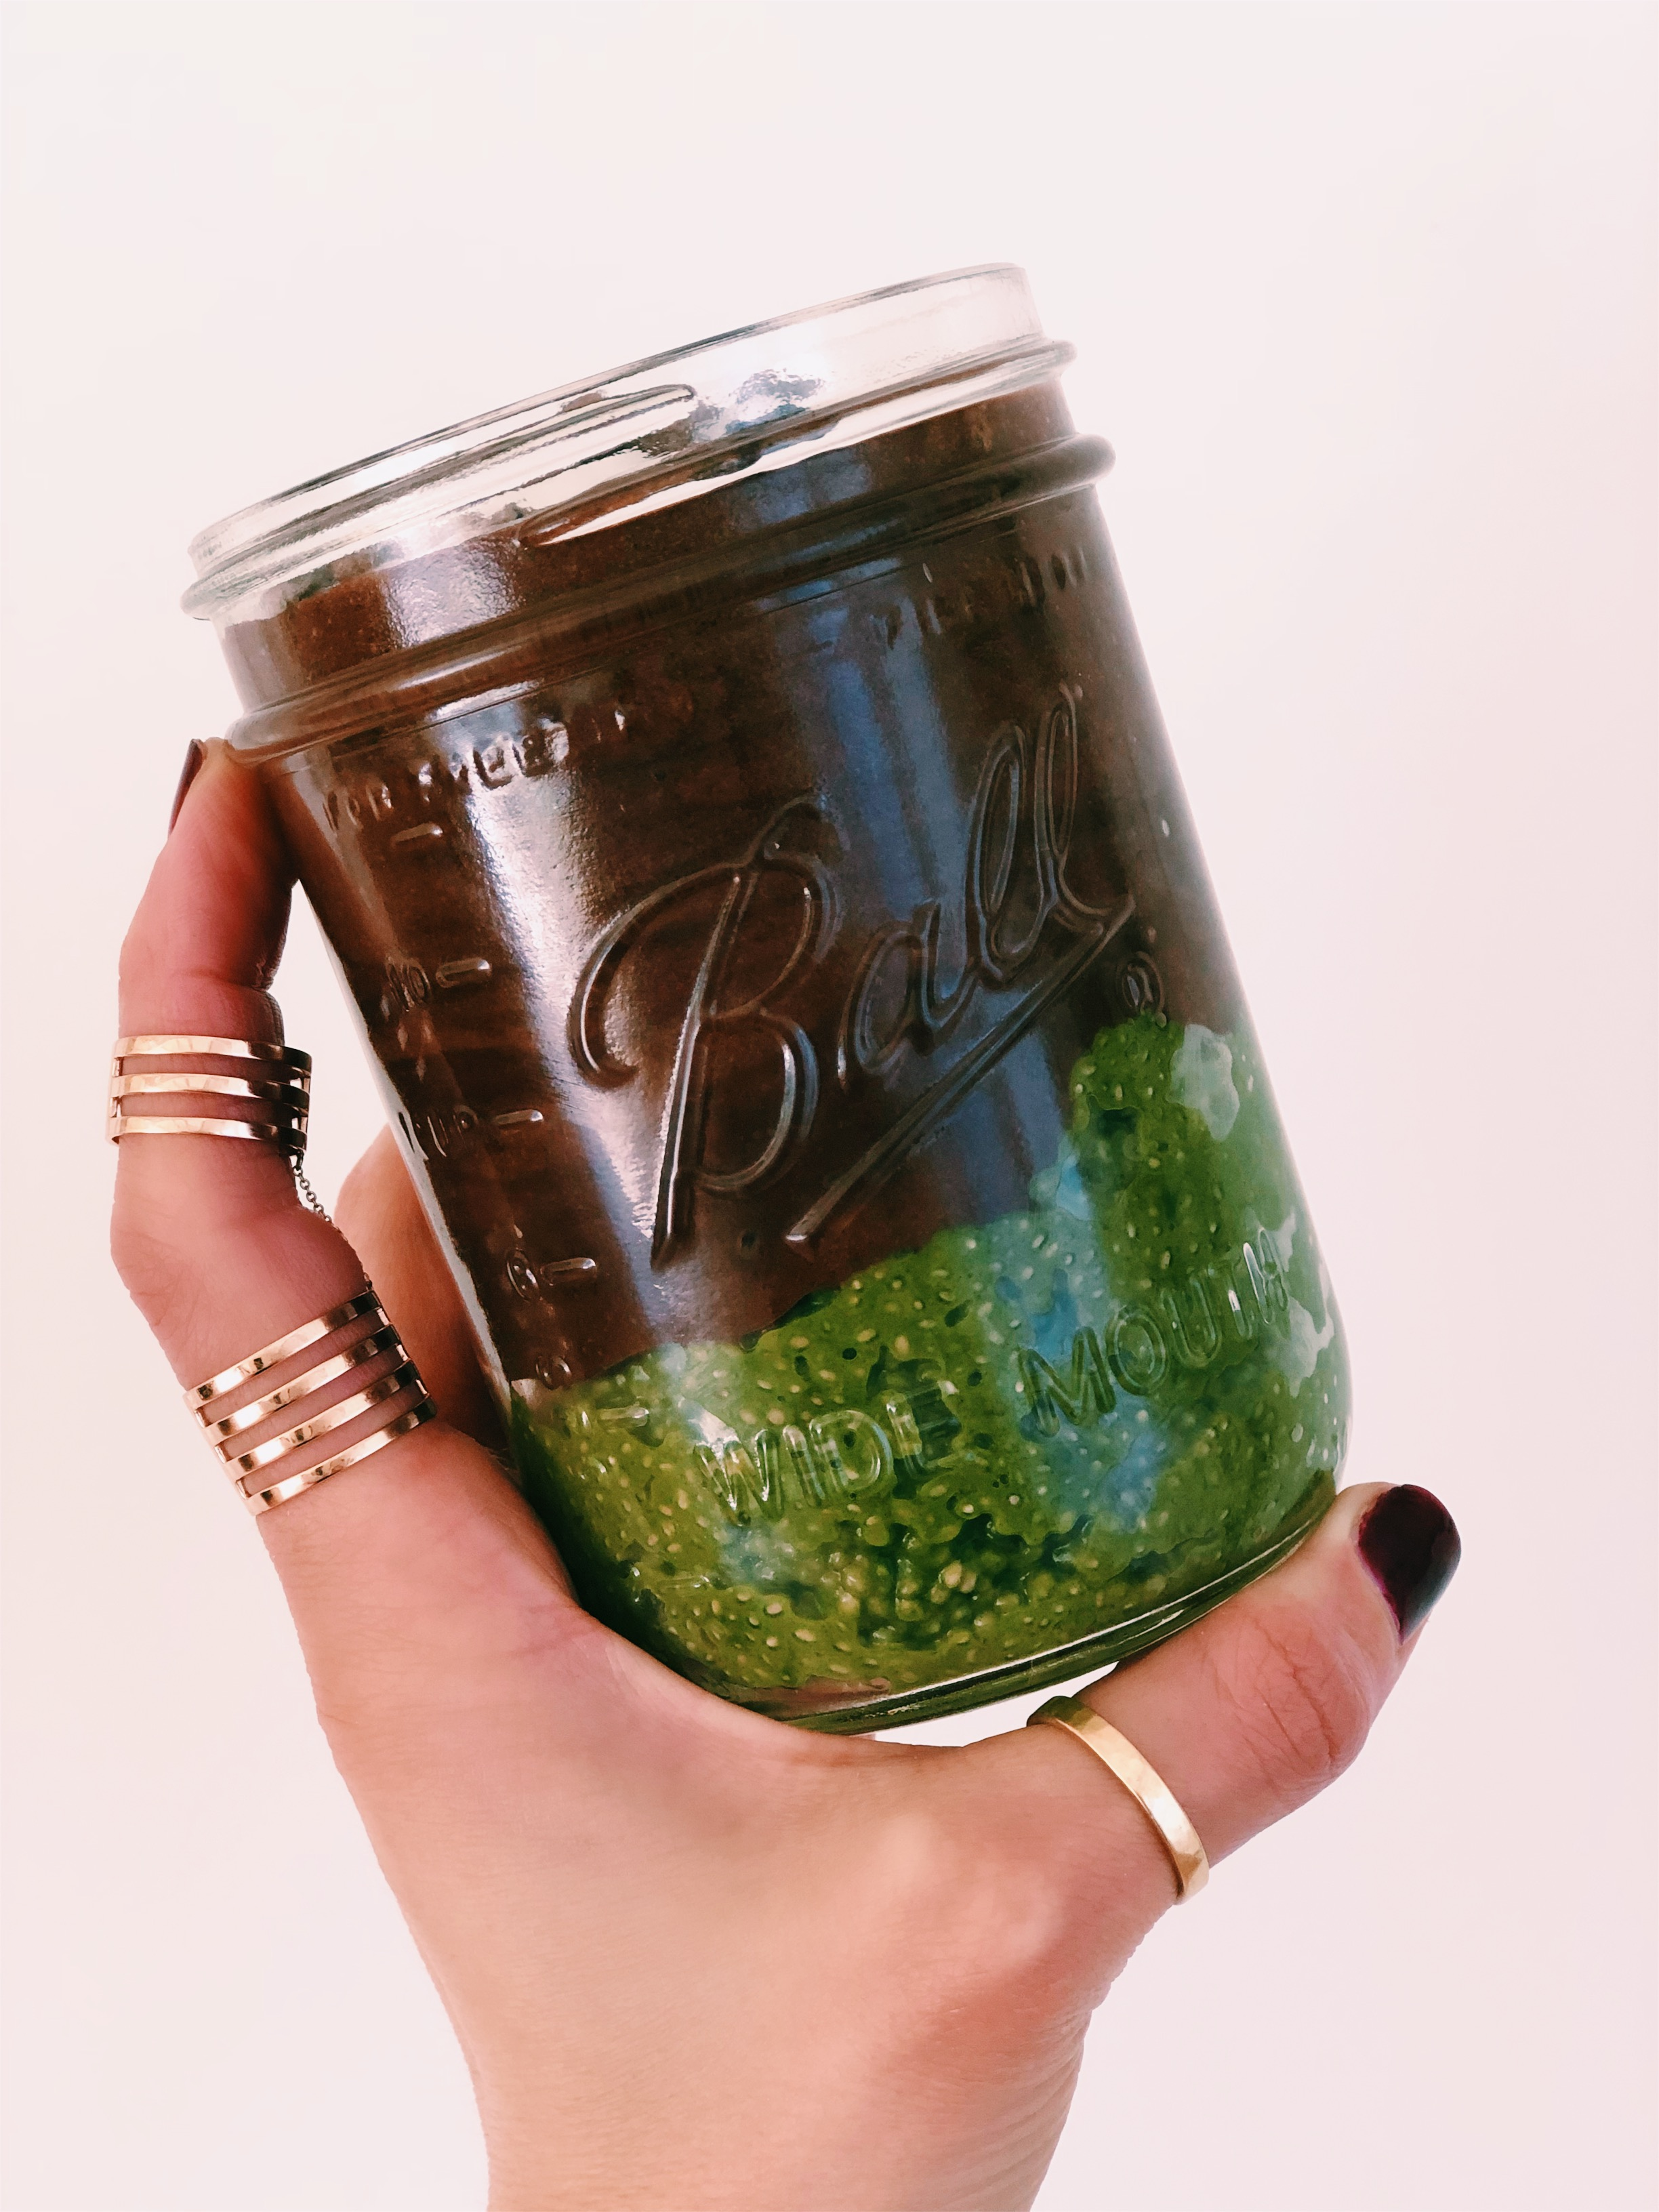 CHOCOLATE MATCHA CHIA PUDDING - INGREDIENTSFOR THE CHOCOLATE2 tablespoons cacao powder1 tsp vanilla extract1 tb maple syrup2 ripe bananaspinch of saltFOR MATCHA CHIA PUDDING1 cup almond milk1 tsp vanilla extract1/4 chia seeds2 tb matcha powder1 tsp maple syrup